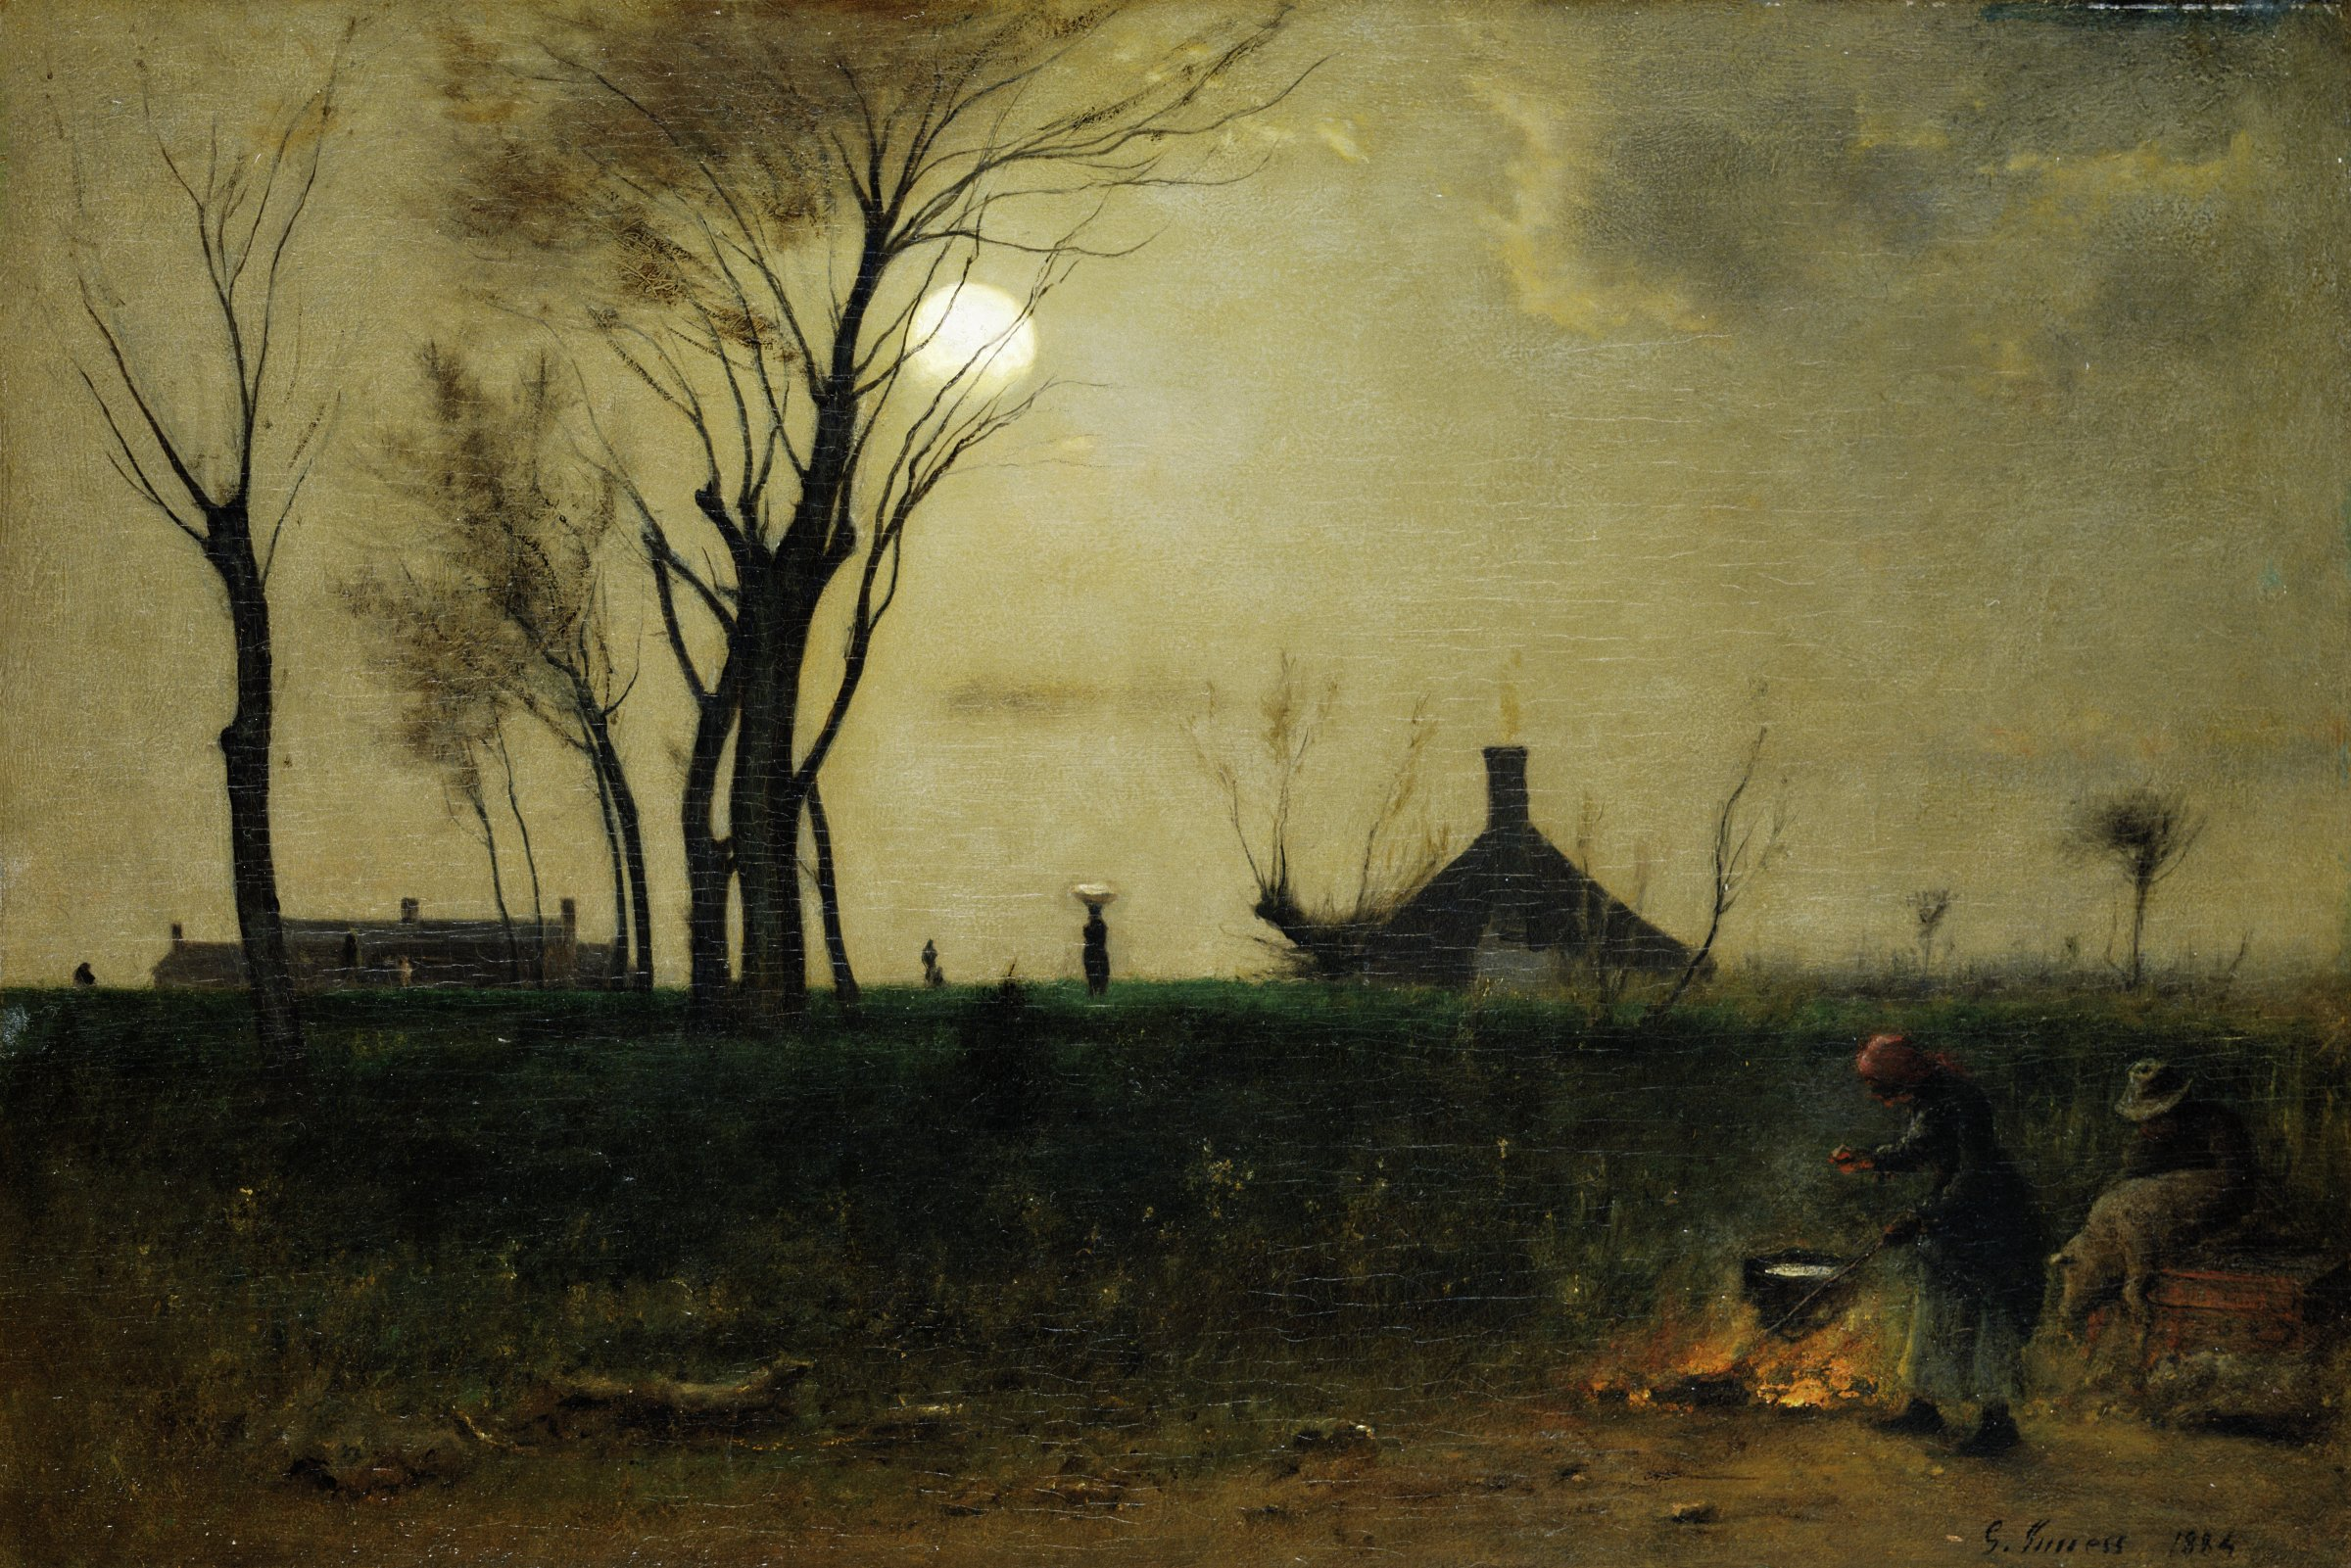 In the right foreground, in a bare space that may be near a stream, a woman tends a fire that heats a kettle, while a man holds a pig for scalding. A few logs lie in the left foreground. The grassy slope of the deep foreground rises to a level ridge in the middle ground, where tall, nearly leafless trees rise as silhouettes against the sky, on the left. Just beyond the top of the slope on the left is the upper part of a large building with several chimneys. An outbuilding is closer on the right. Near the top of the slope, left of center, a woman walks with a basket on her head. There may be another, more distant figure at the far left. The moon is high in the center of a sky with few clouds.